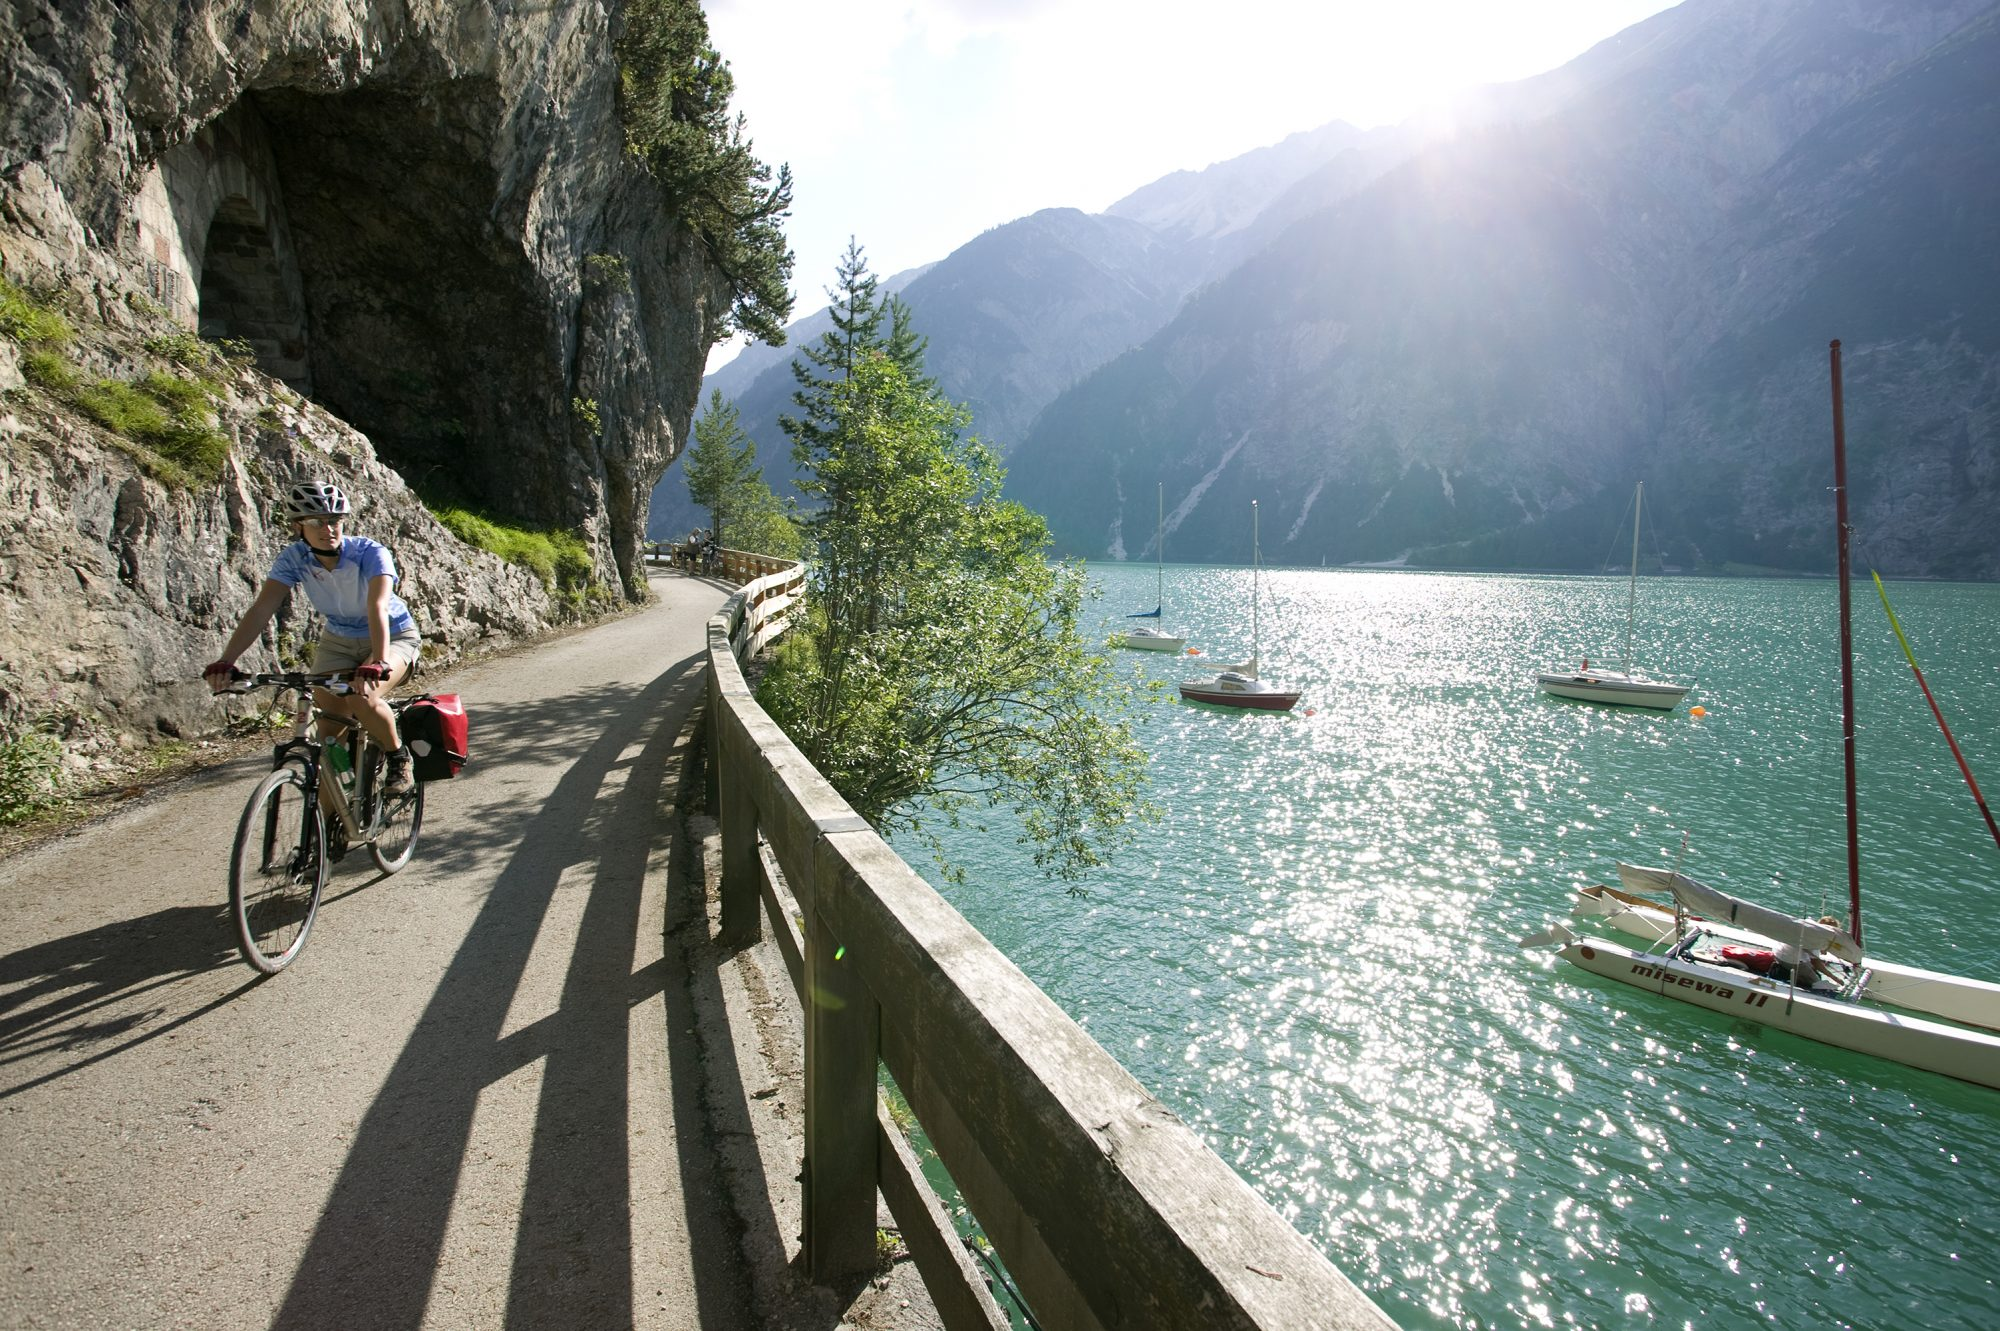 Most Beautiful Cities in the World to Bike, According to Instagram Data